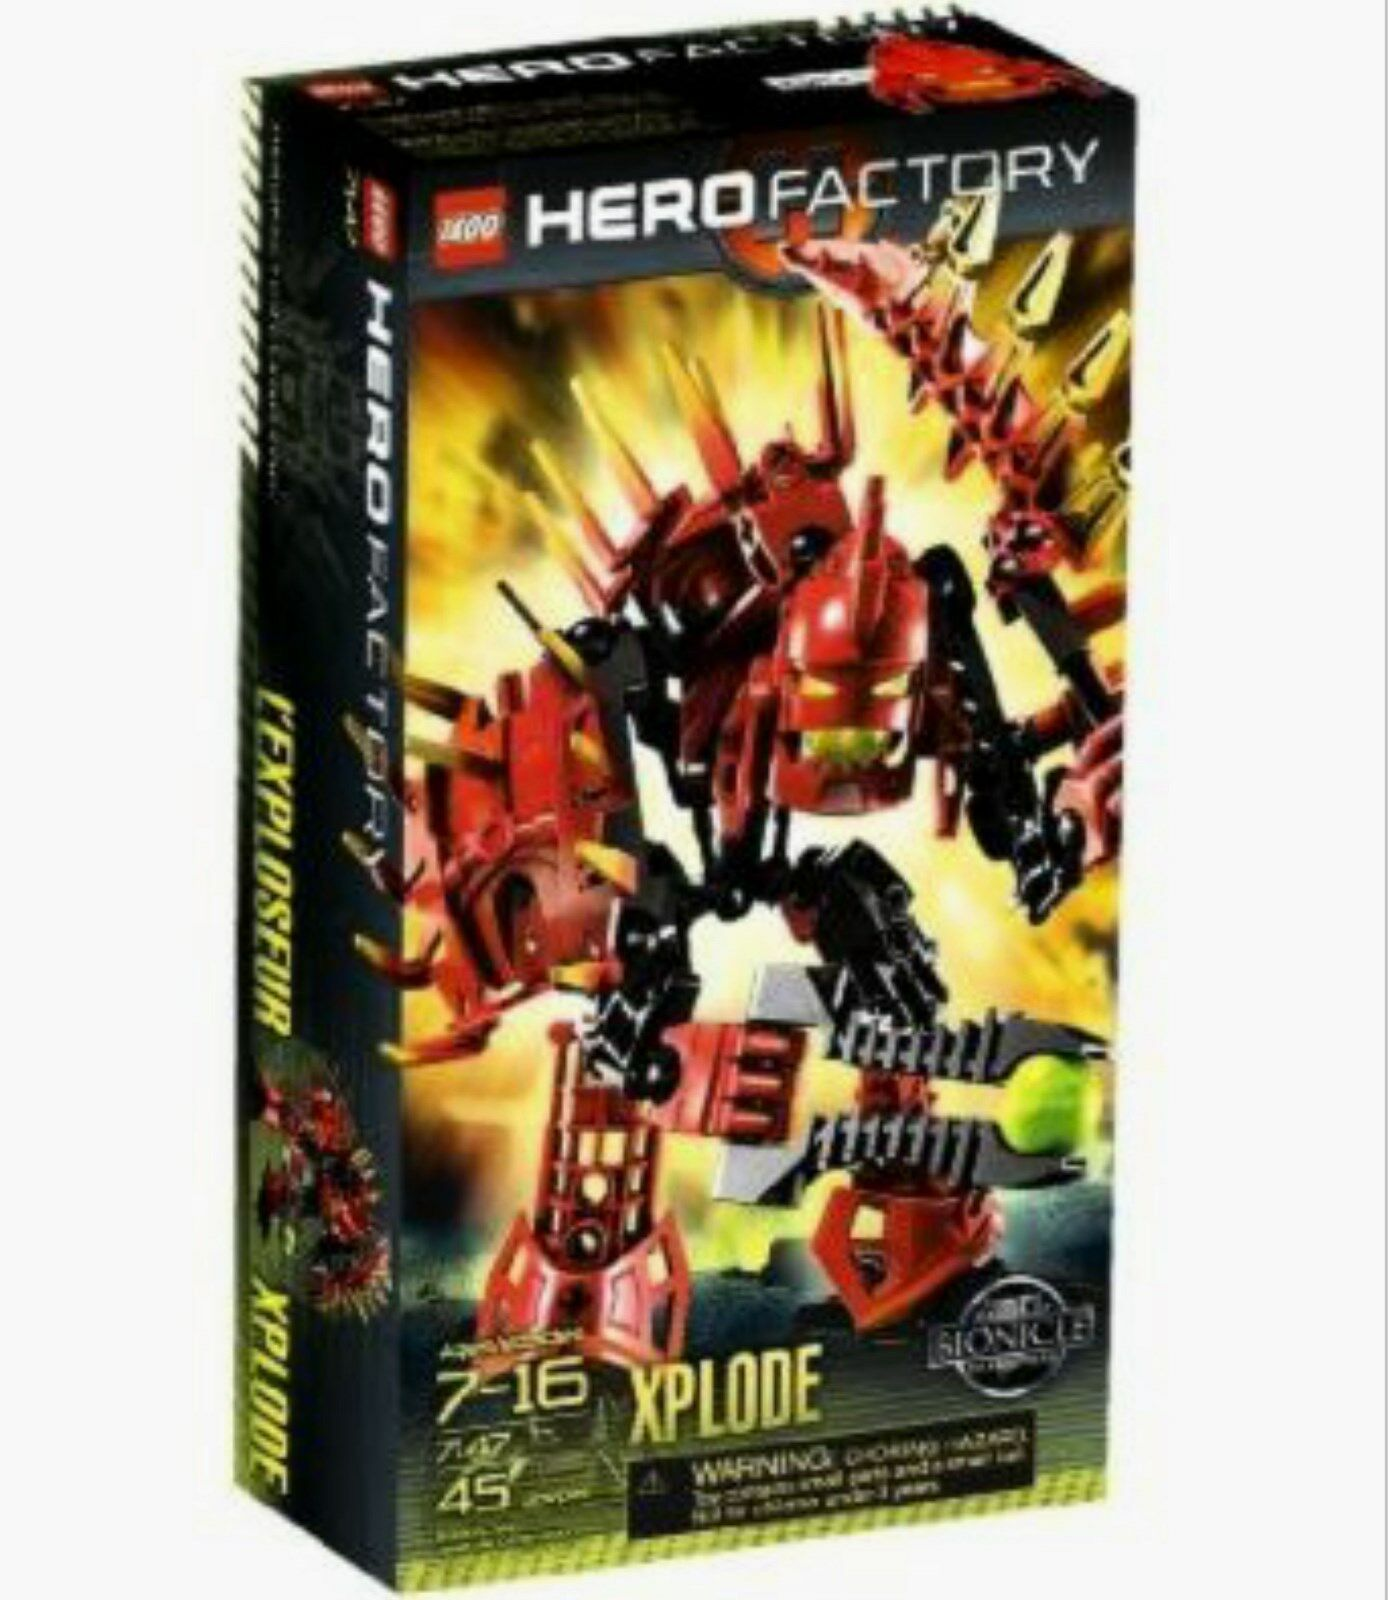 Lego Bionicle Hero Factory 7147 XPLODE XPLODE XPLODE Factory Sealed 45 Pieces 2010 fada17